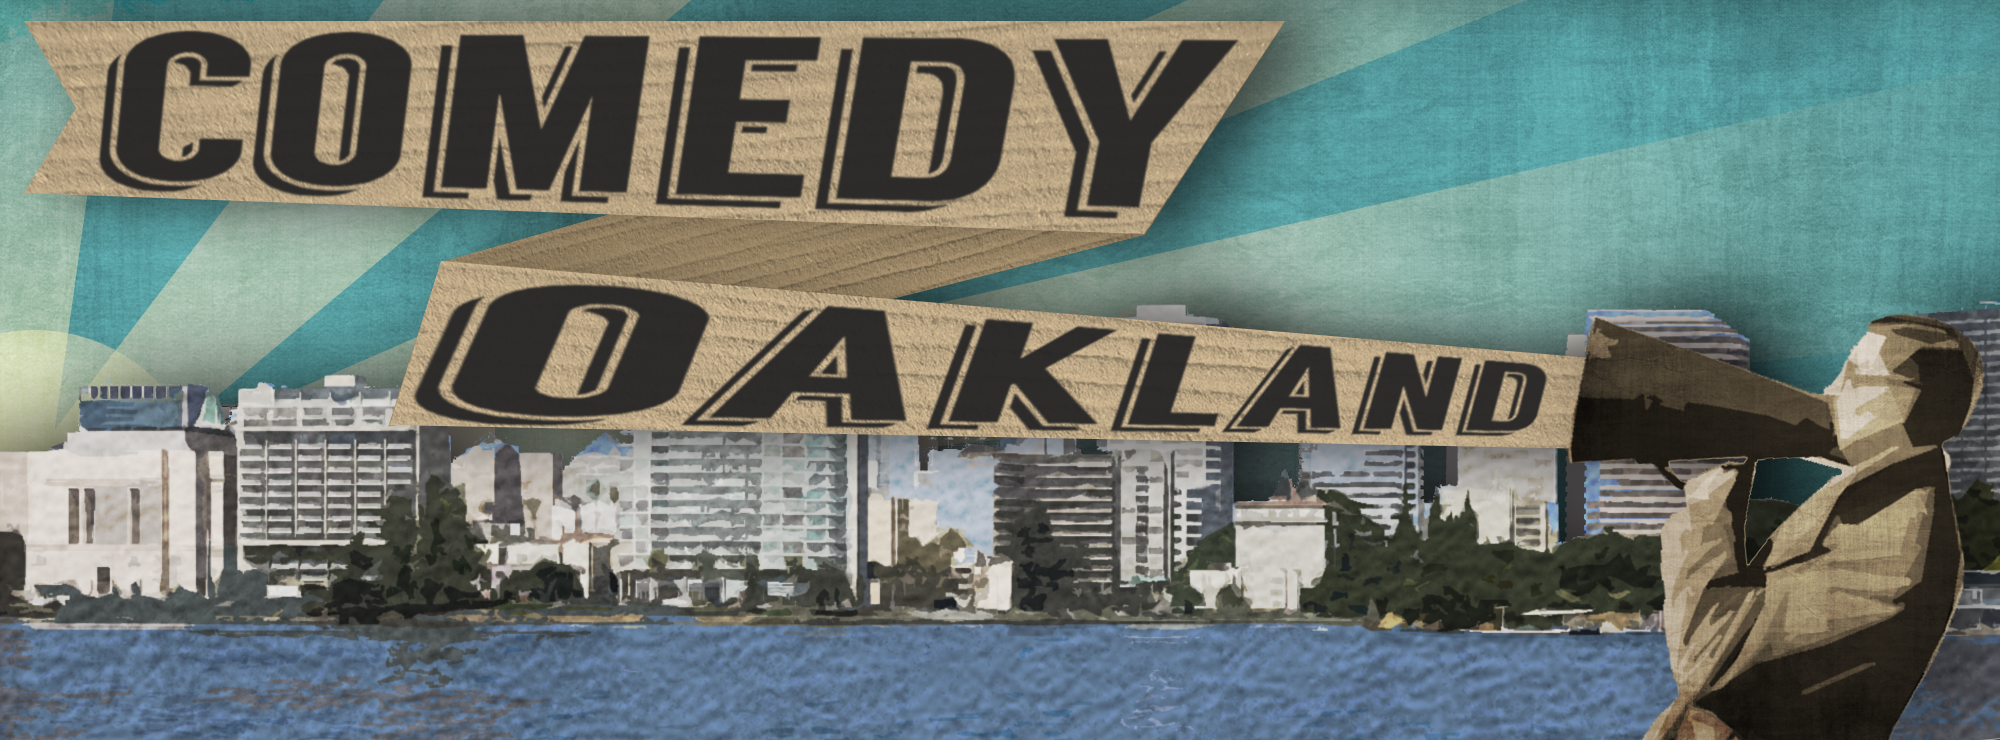 Comedy Oakland, Oakland, CA - Localwise business profile picture